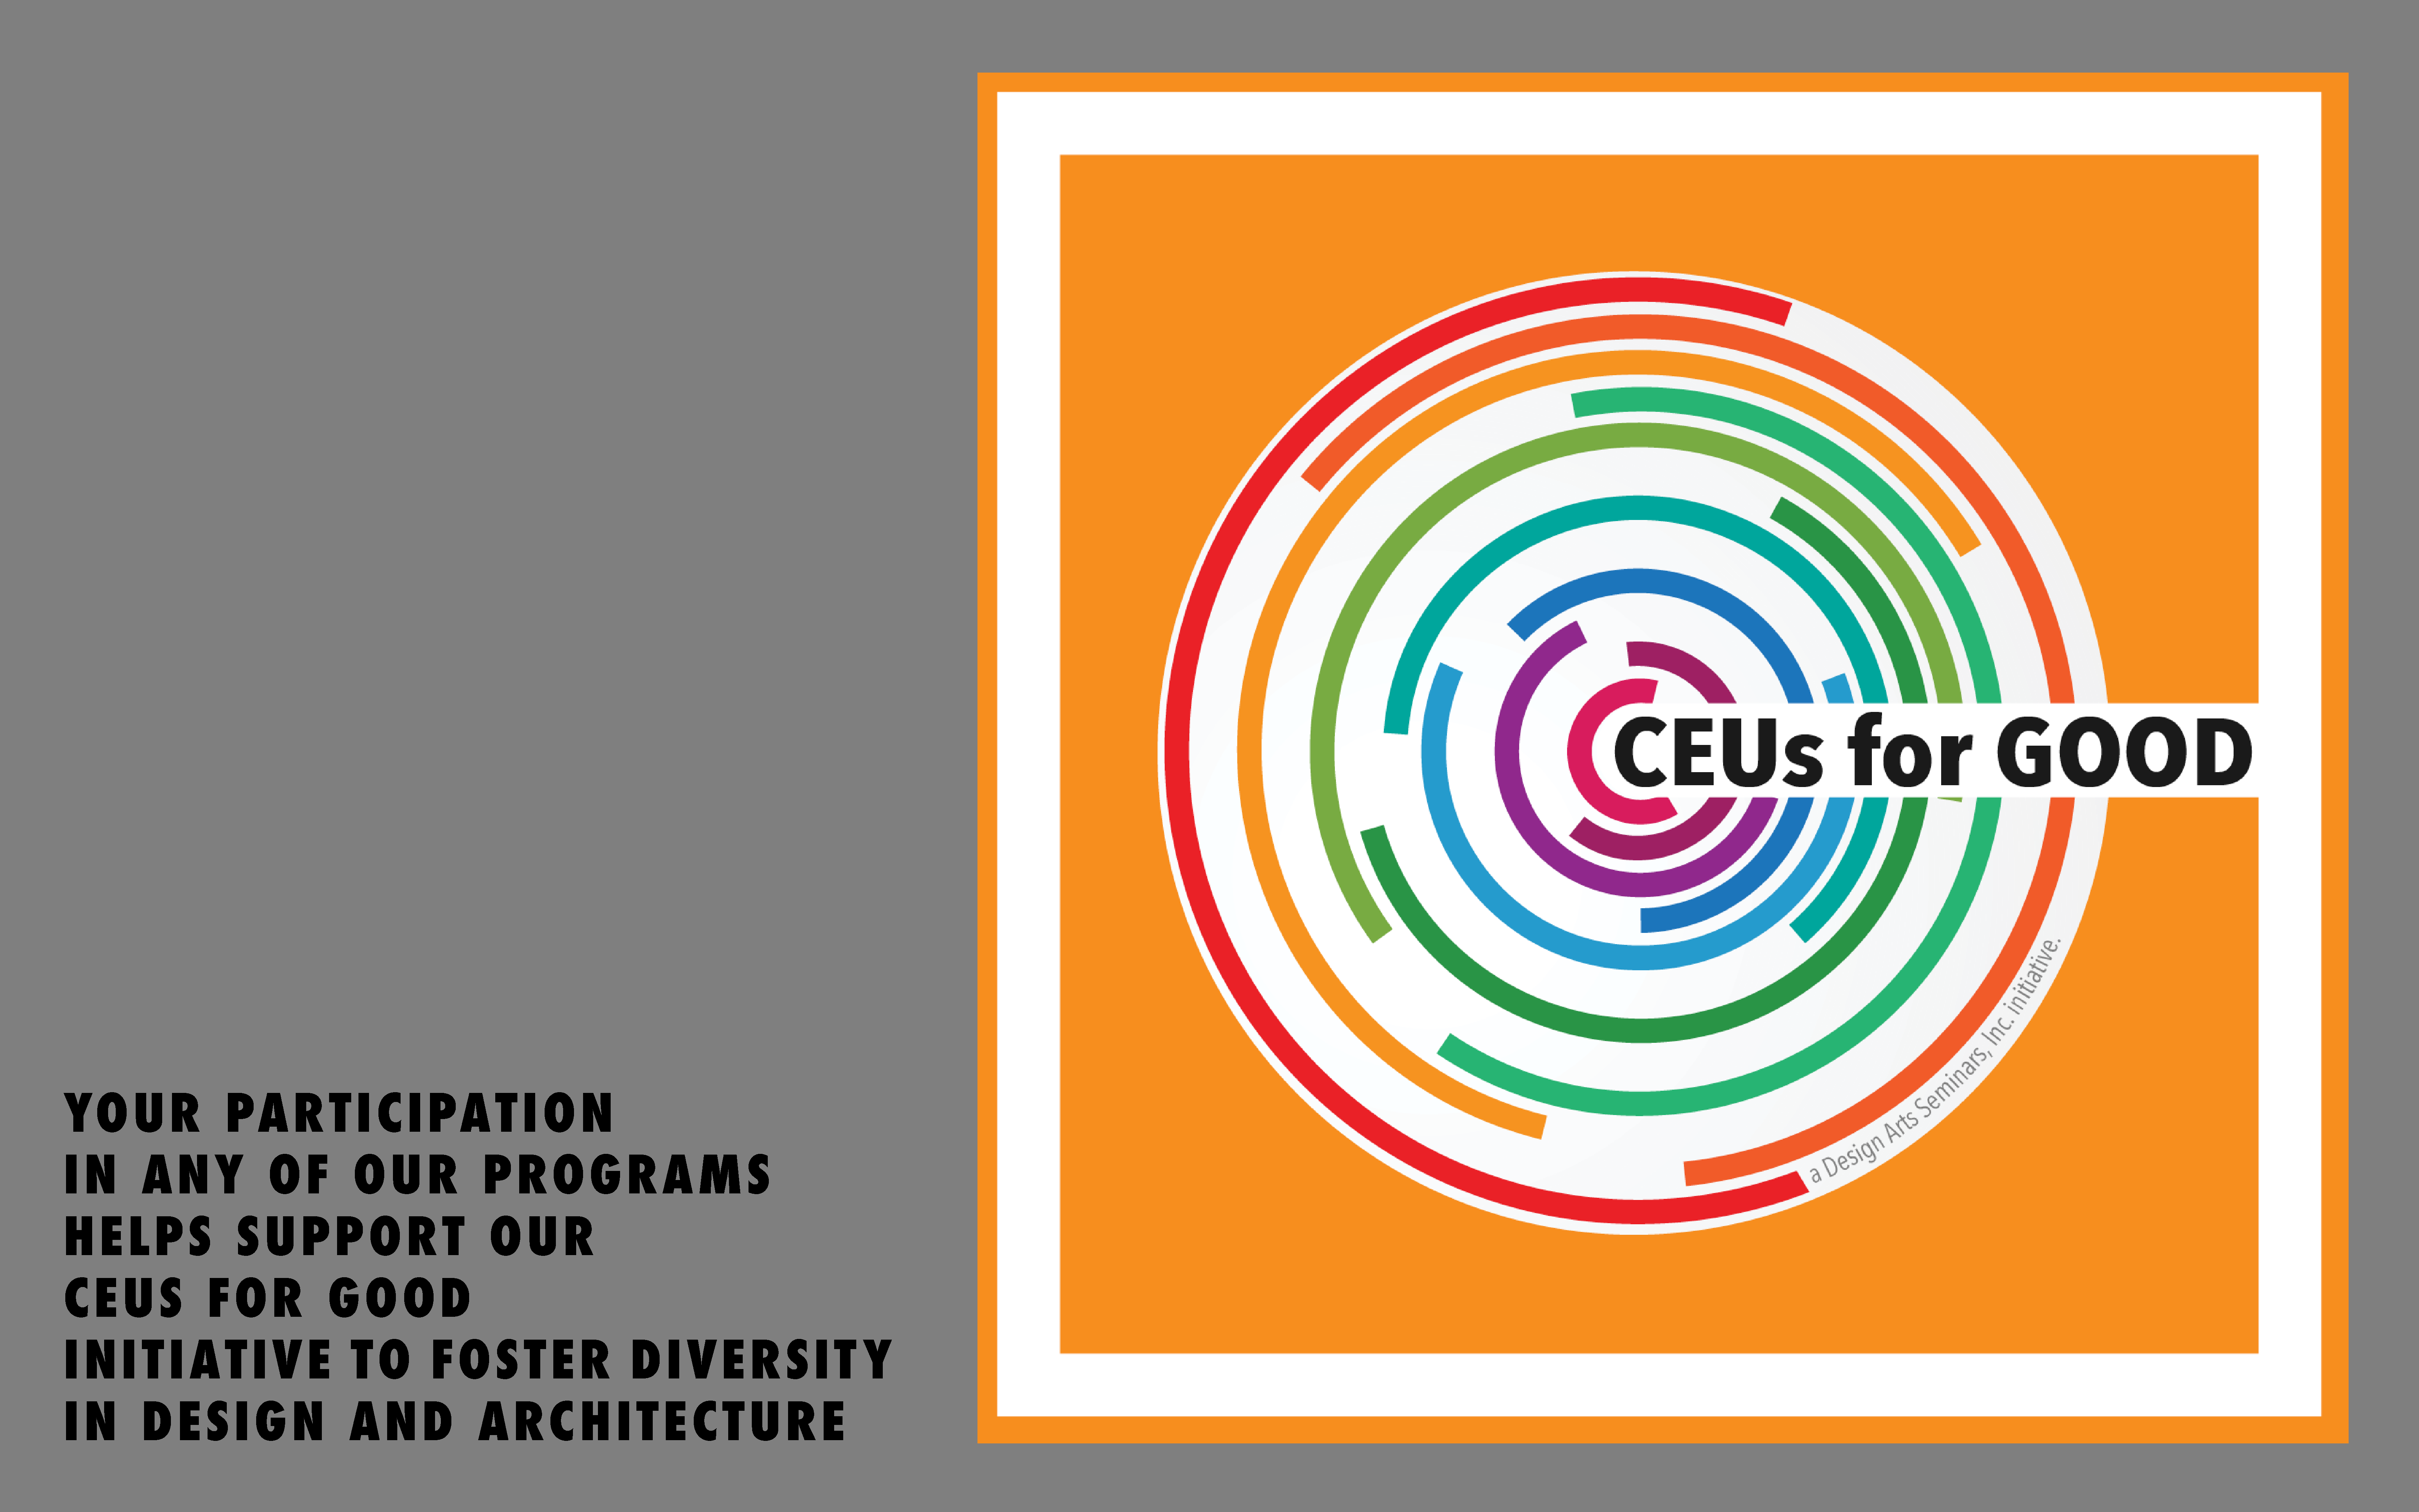 CEUs for Good Initiative